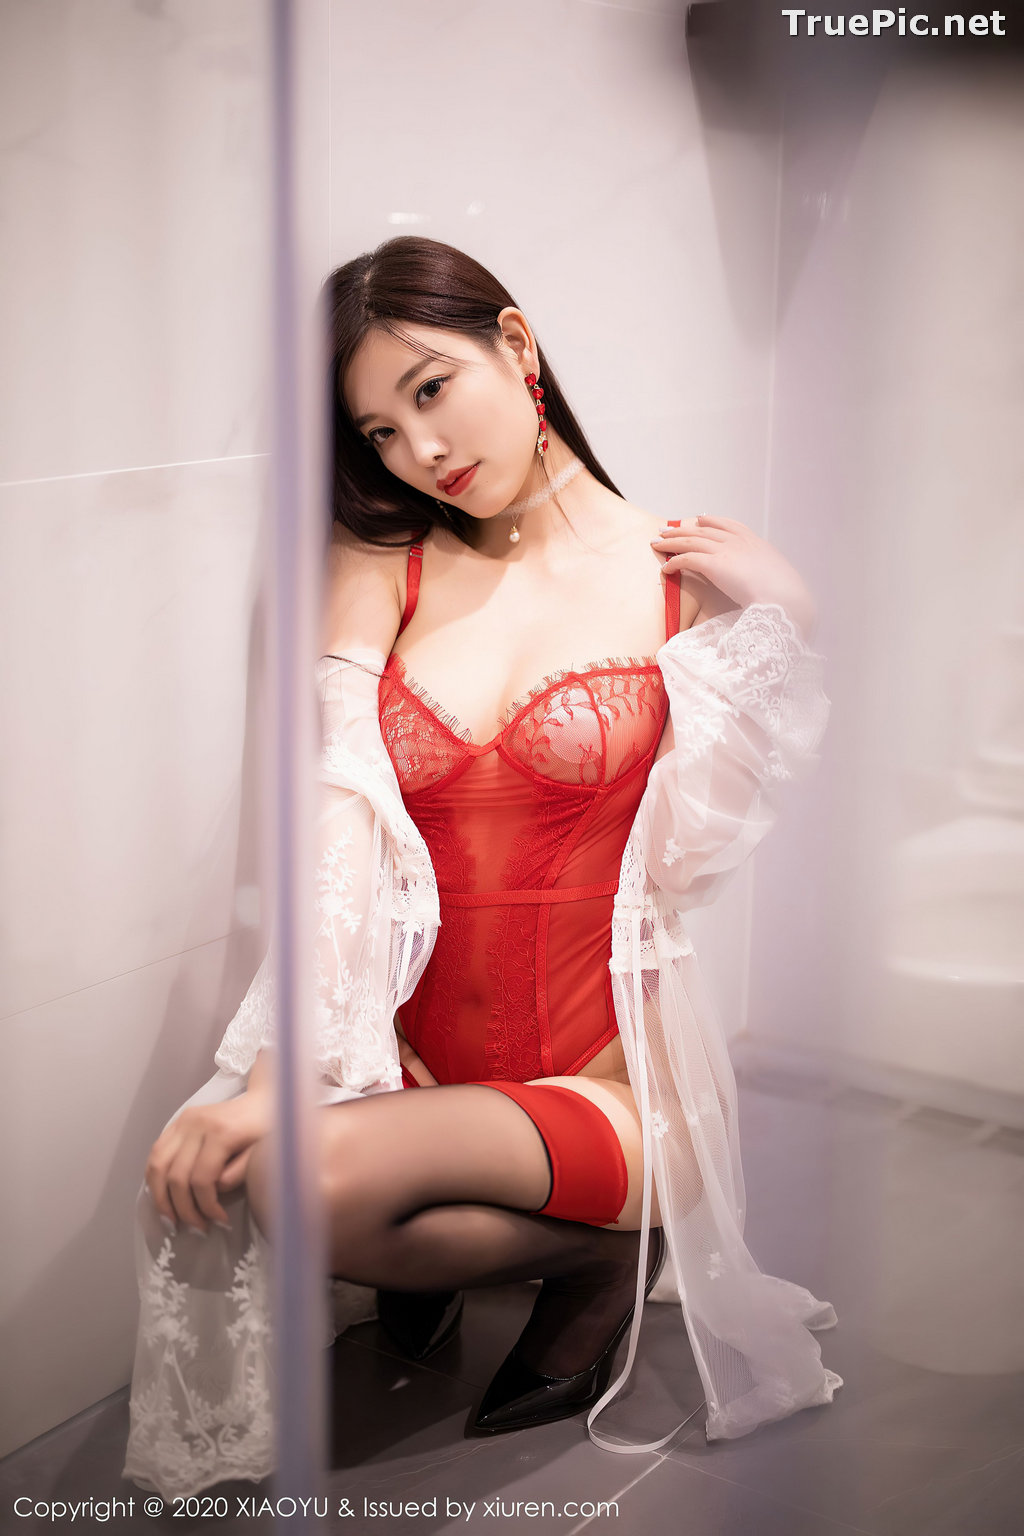 Image XiaoYu Vol.413 - Chinese Model - Yang Chen Chen (杨晨晨sugar)- Red Crystal-clear Lingerie - TruePic.net - Picture-8